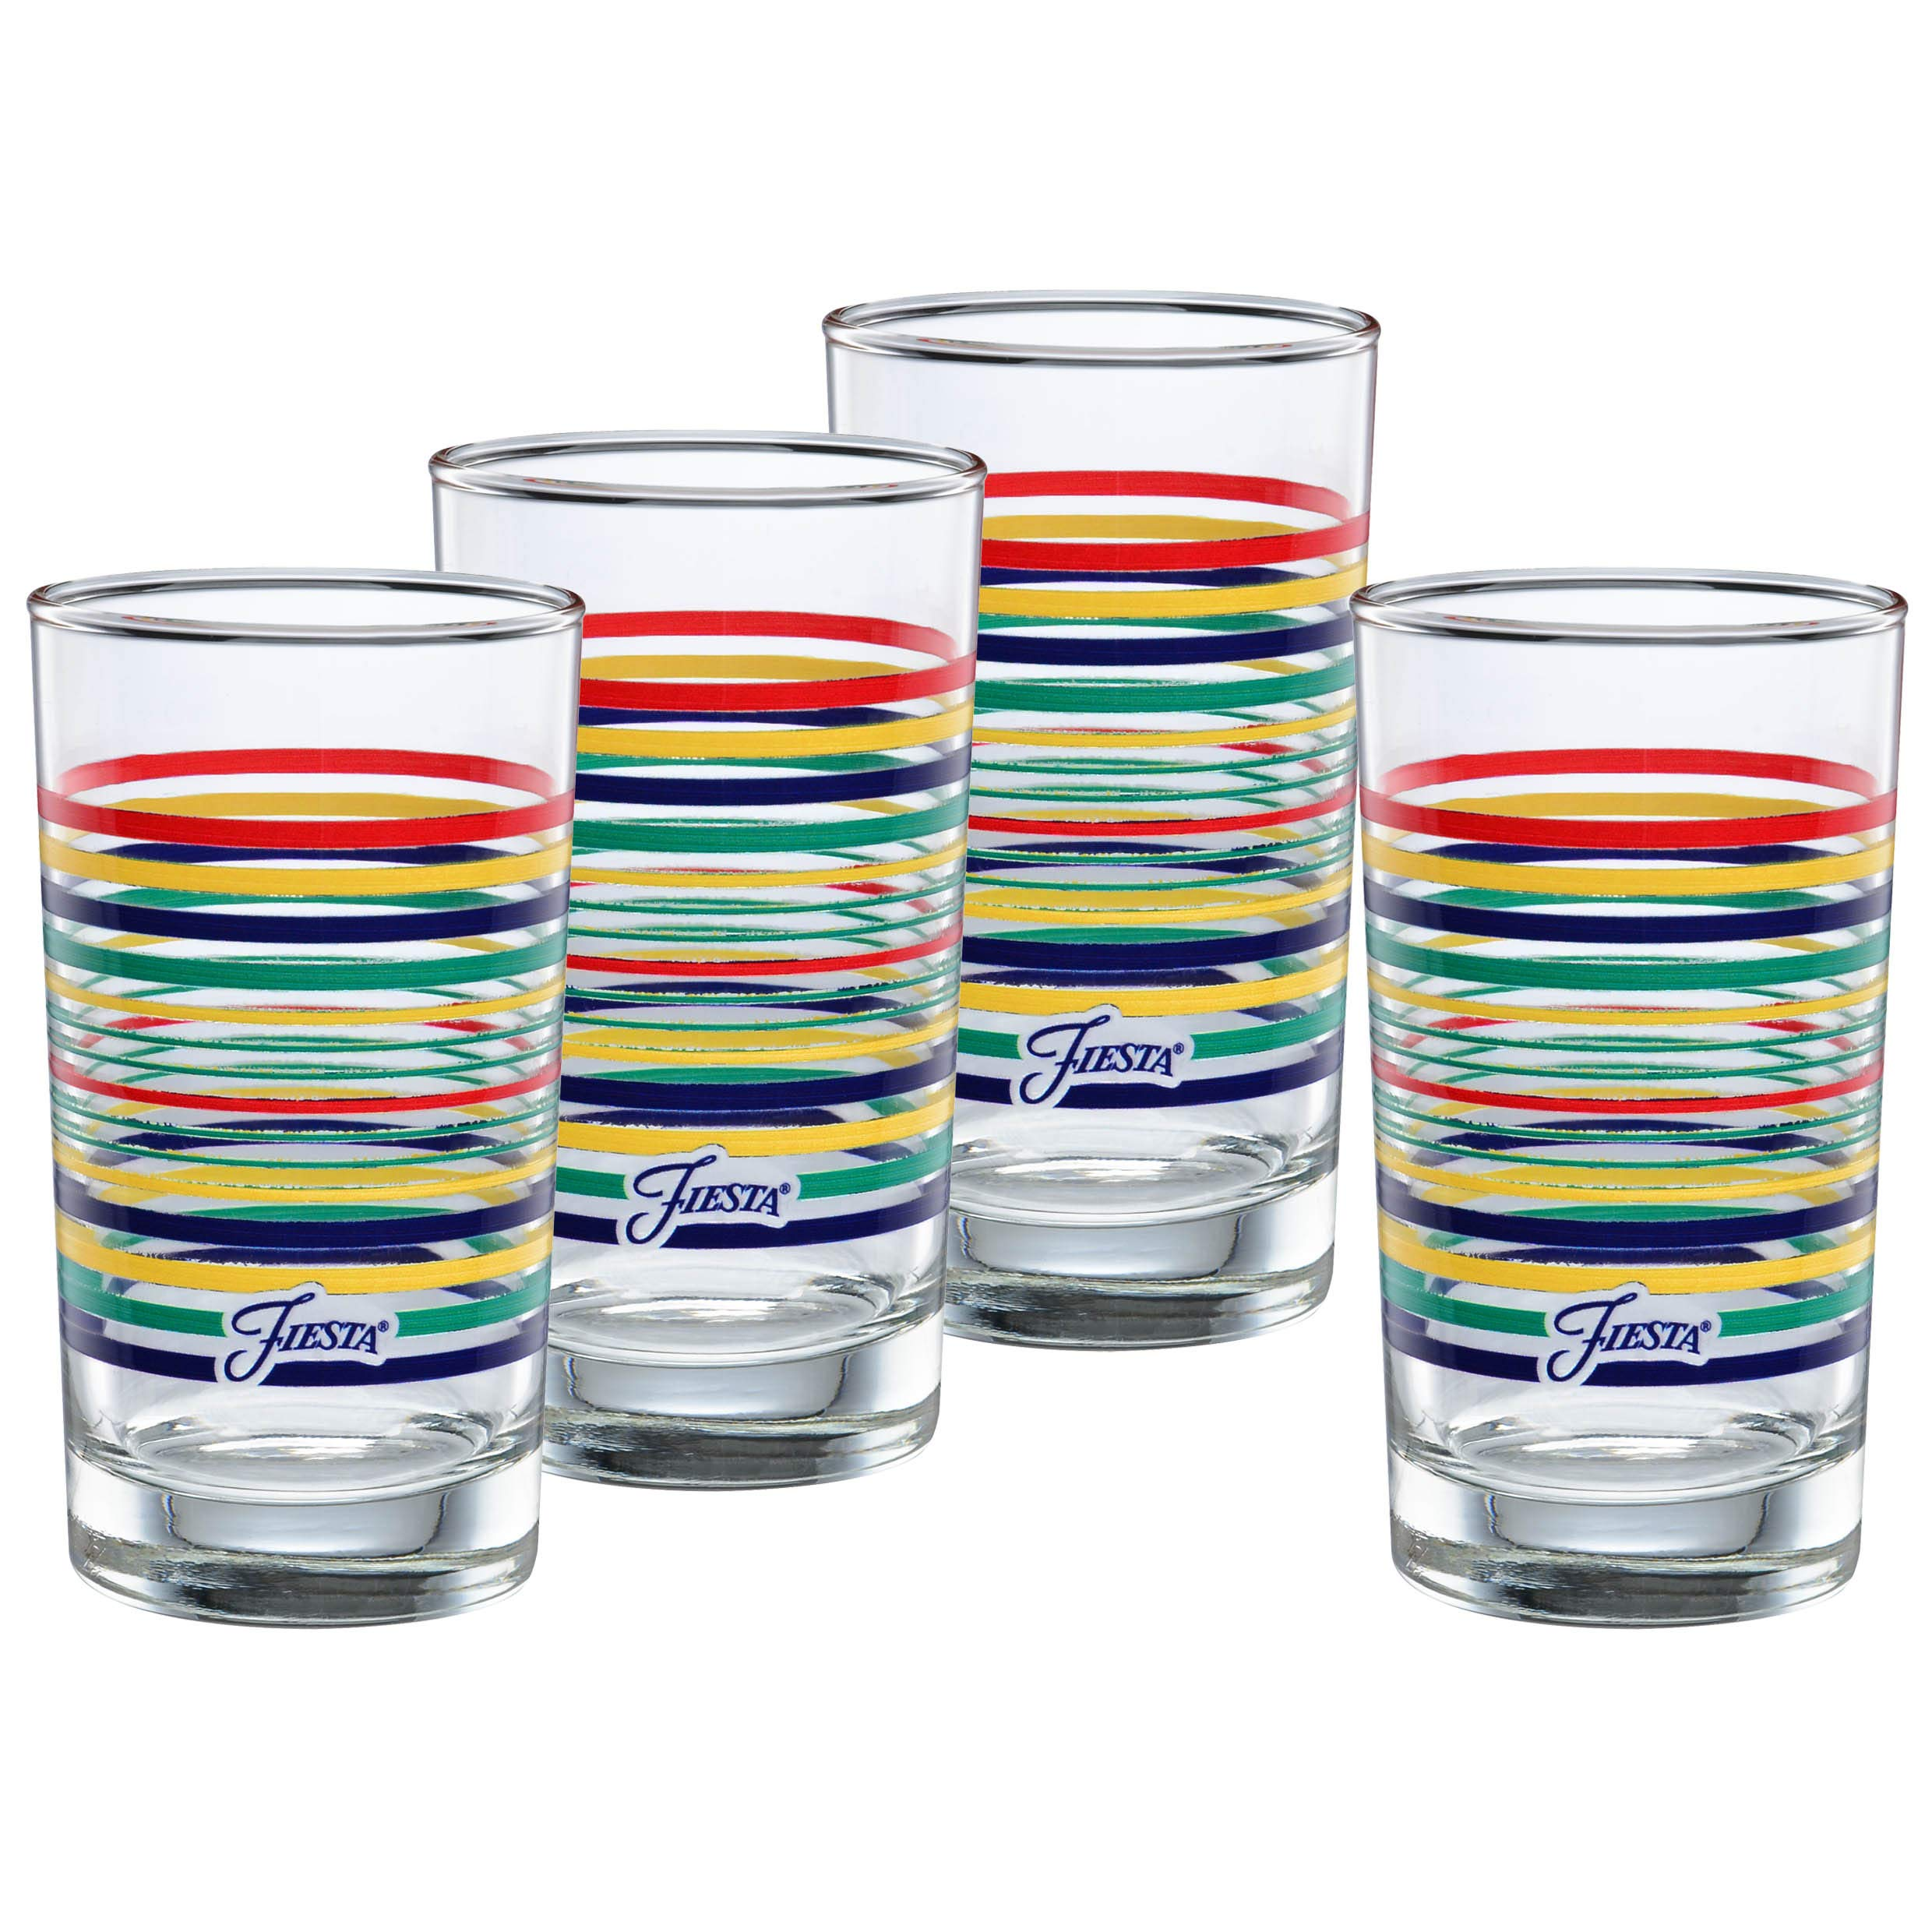 Officially Licensed Fiesta Stripes 7-Ounce Juice Glass (Set of 4) (Cobalt Collection)